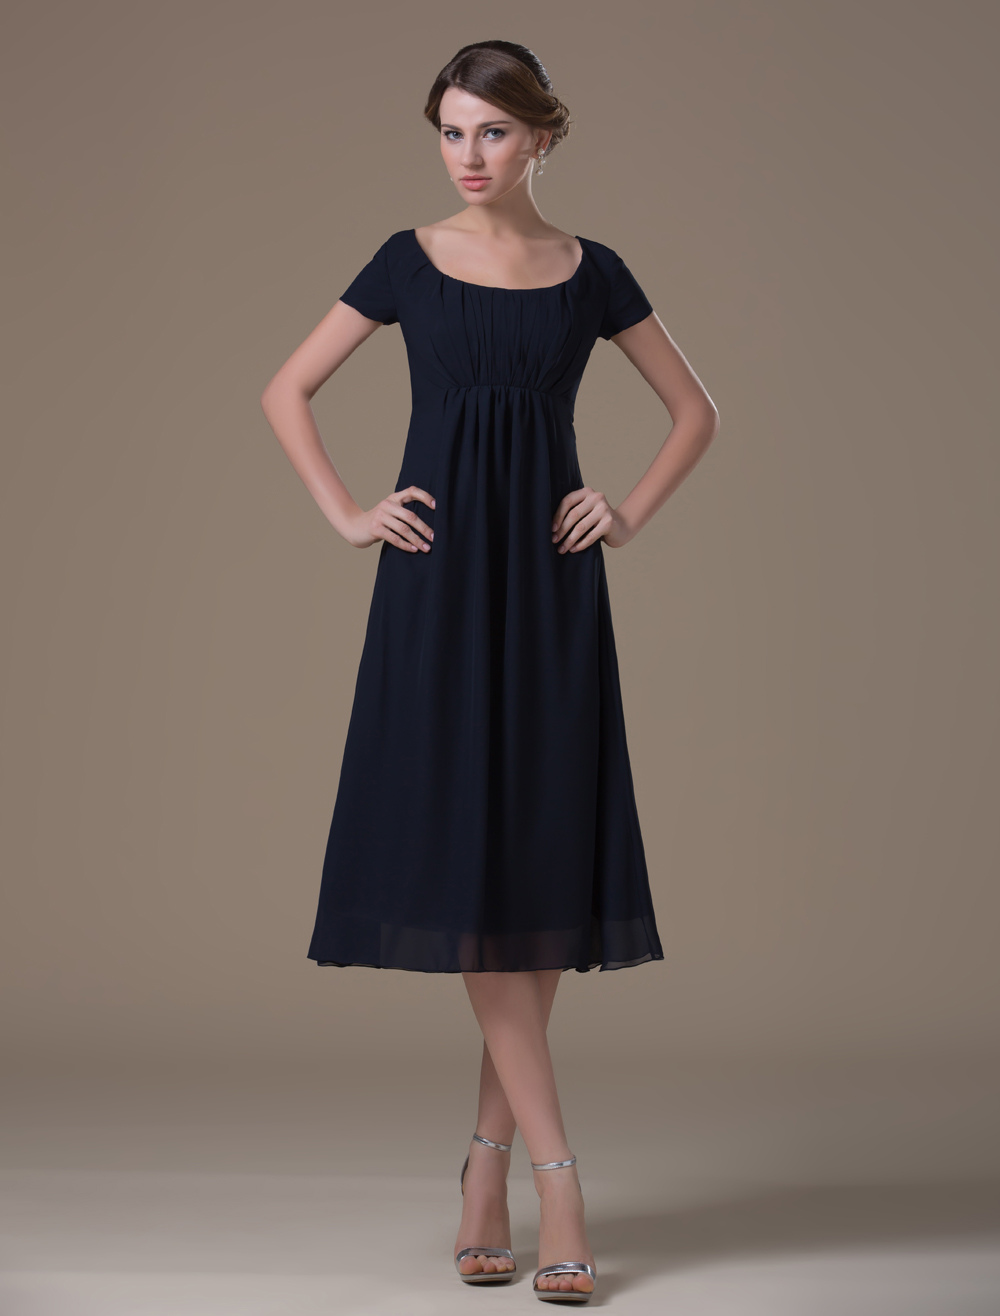 Dark Blue A-line Square Neck Chiffon Tea Length Maternity Bridesmaid Dress